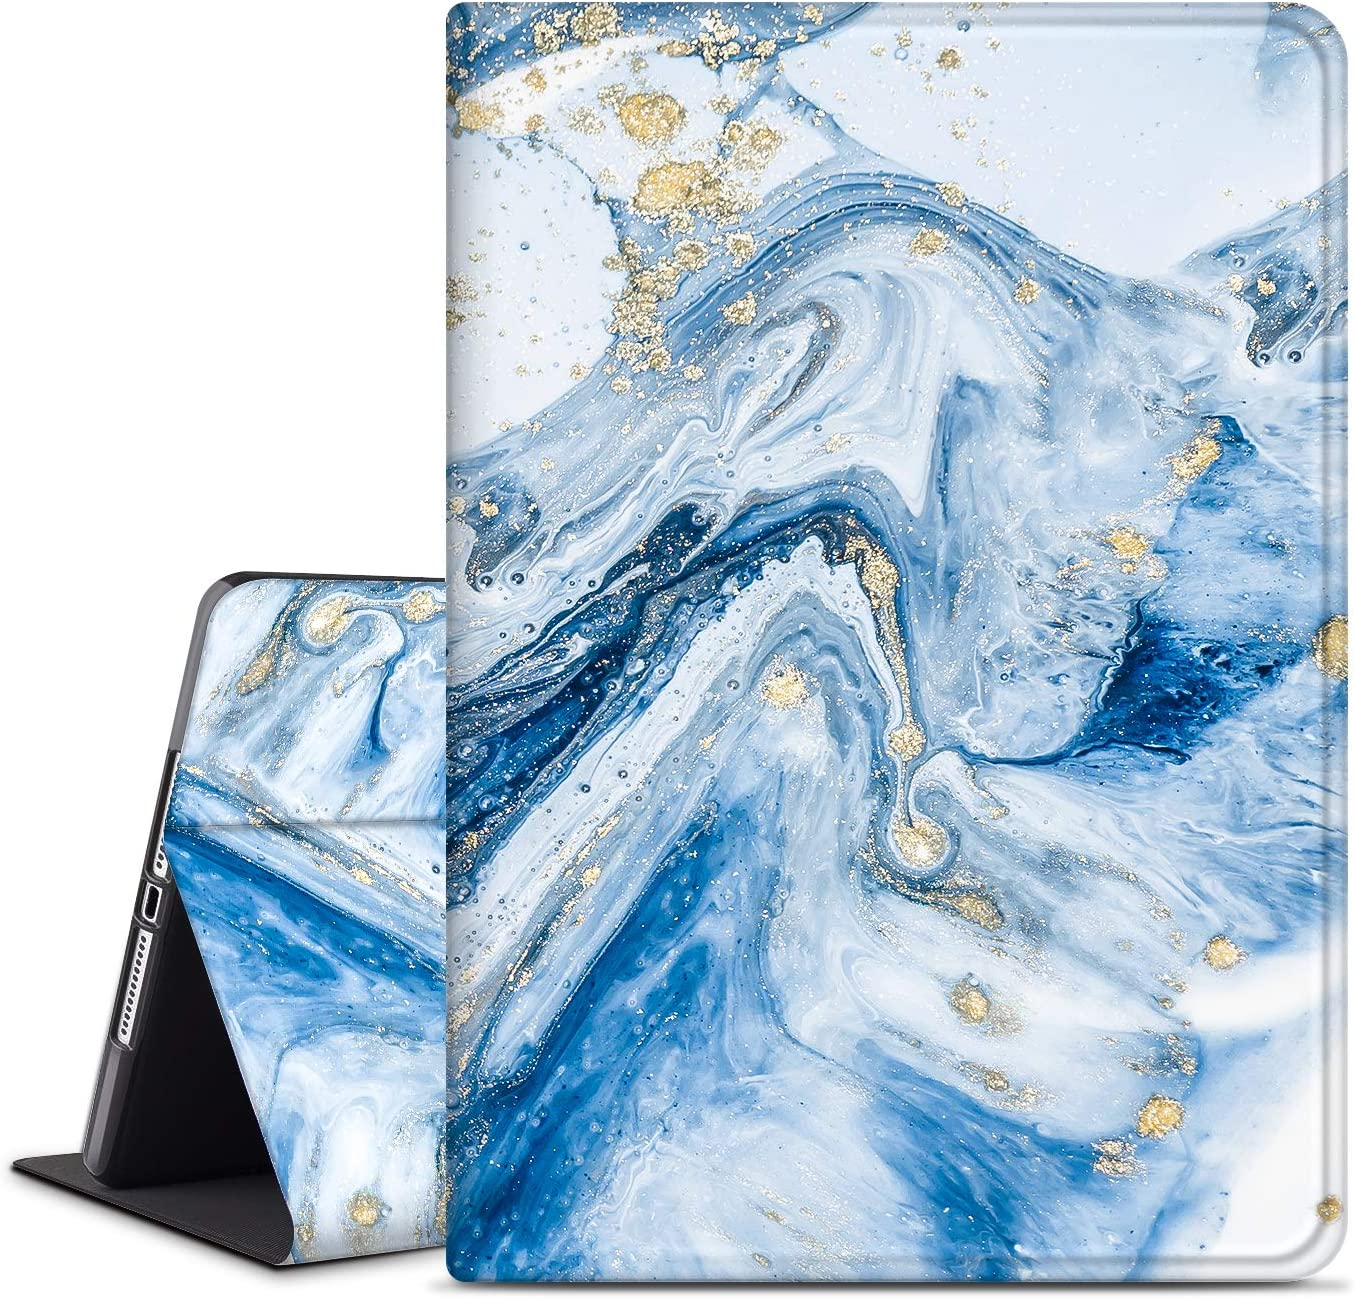 INSSISAIN Case for iPad Generation 7th Max Deluxe 86% OFF 8th 2020